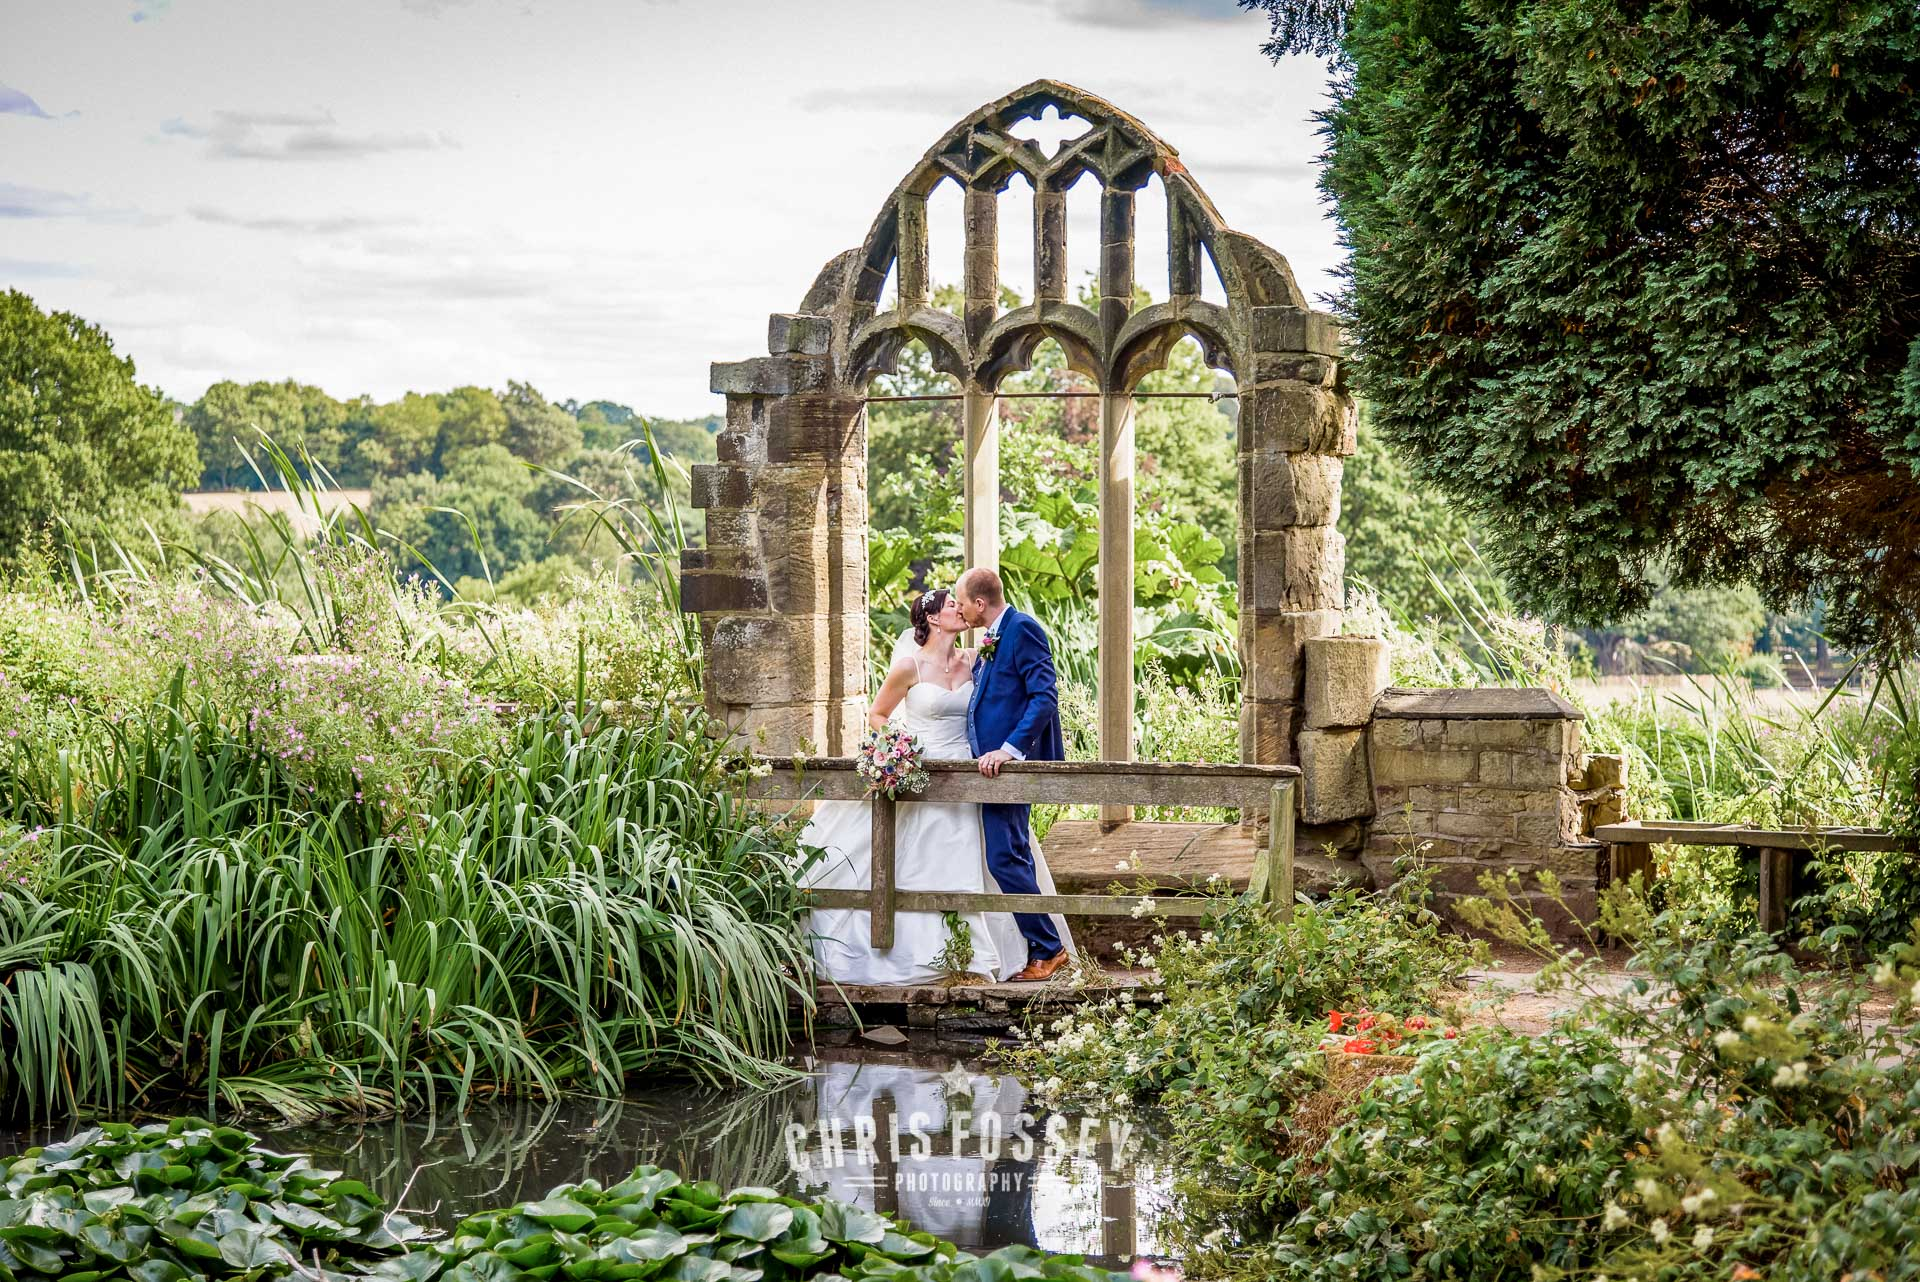 Warwickshire Wedding Photography Portfolio-Yorkshire Wedding Photography by Chris Fossey-123